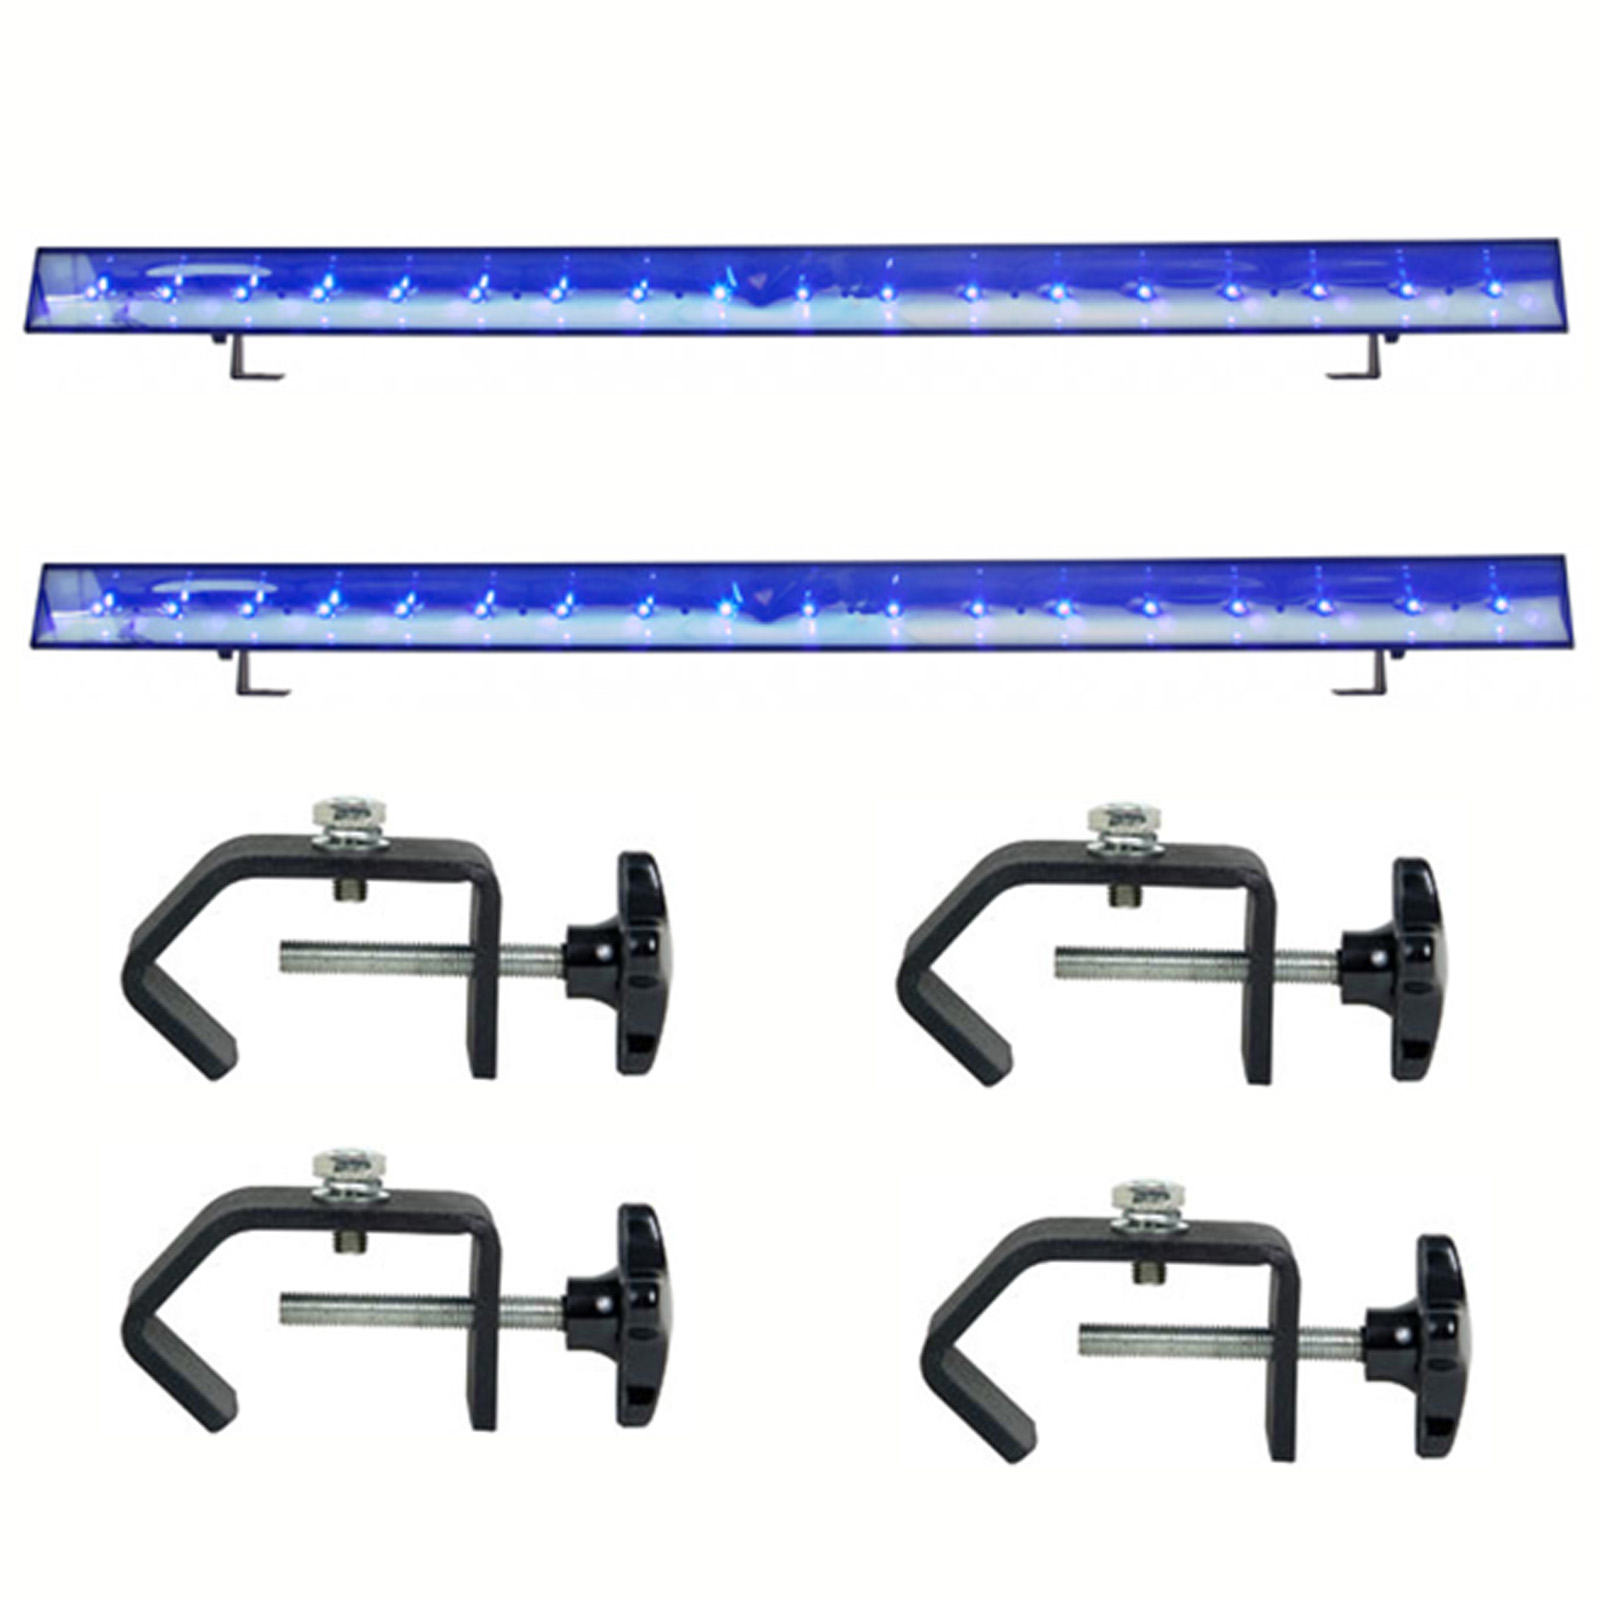 American DJ 18x3Watt LED Eco DMX Lighting Bar (2) with Heavy Duty C-Clamp (4)